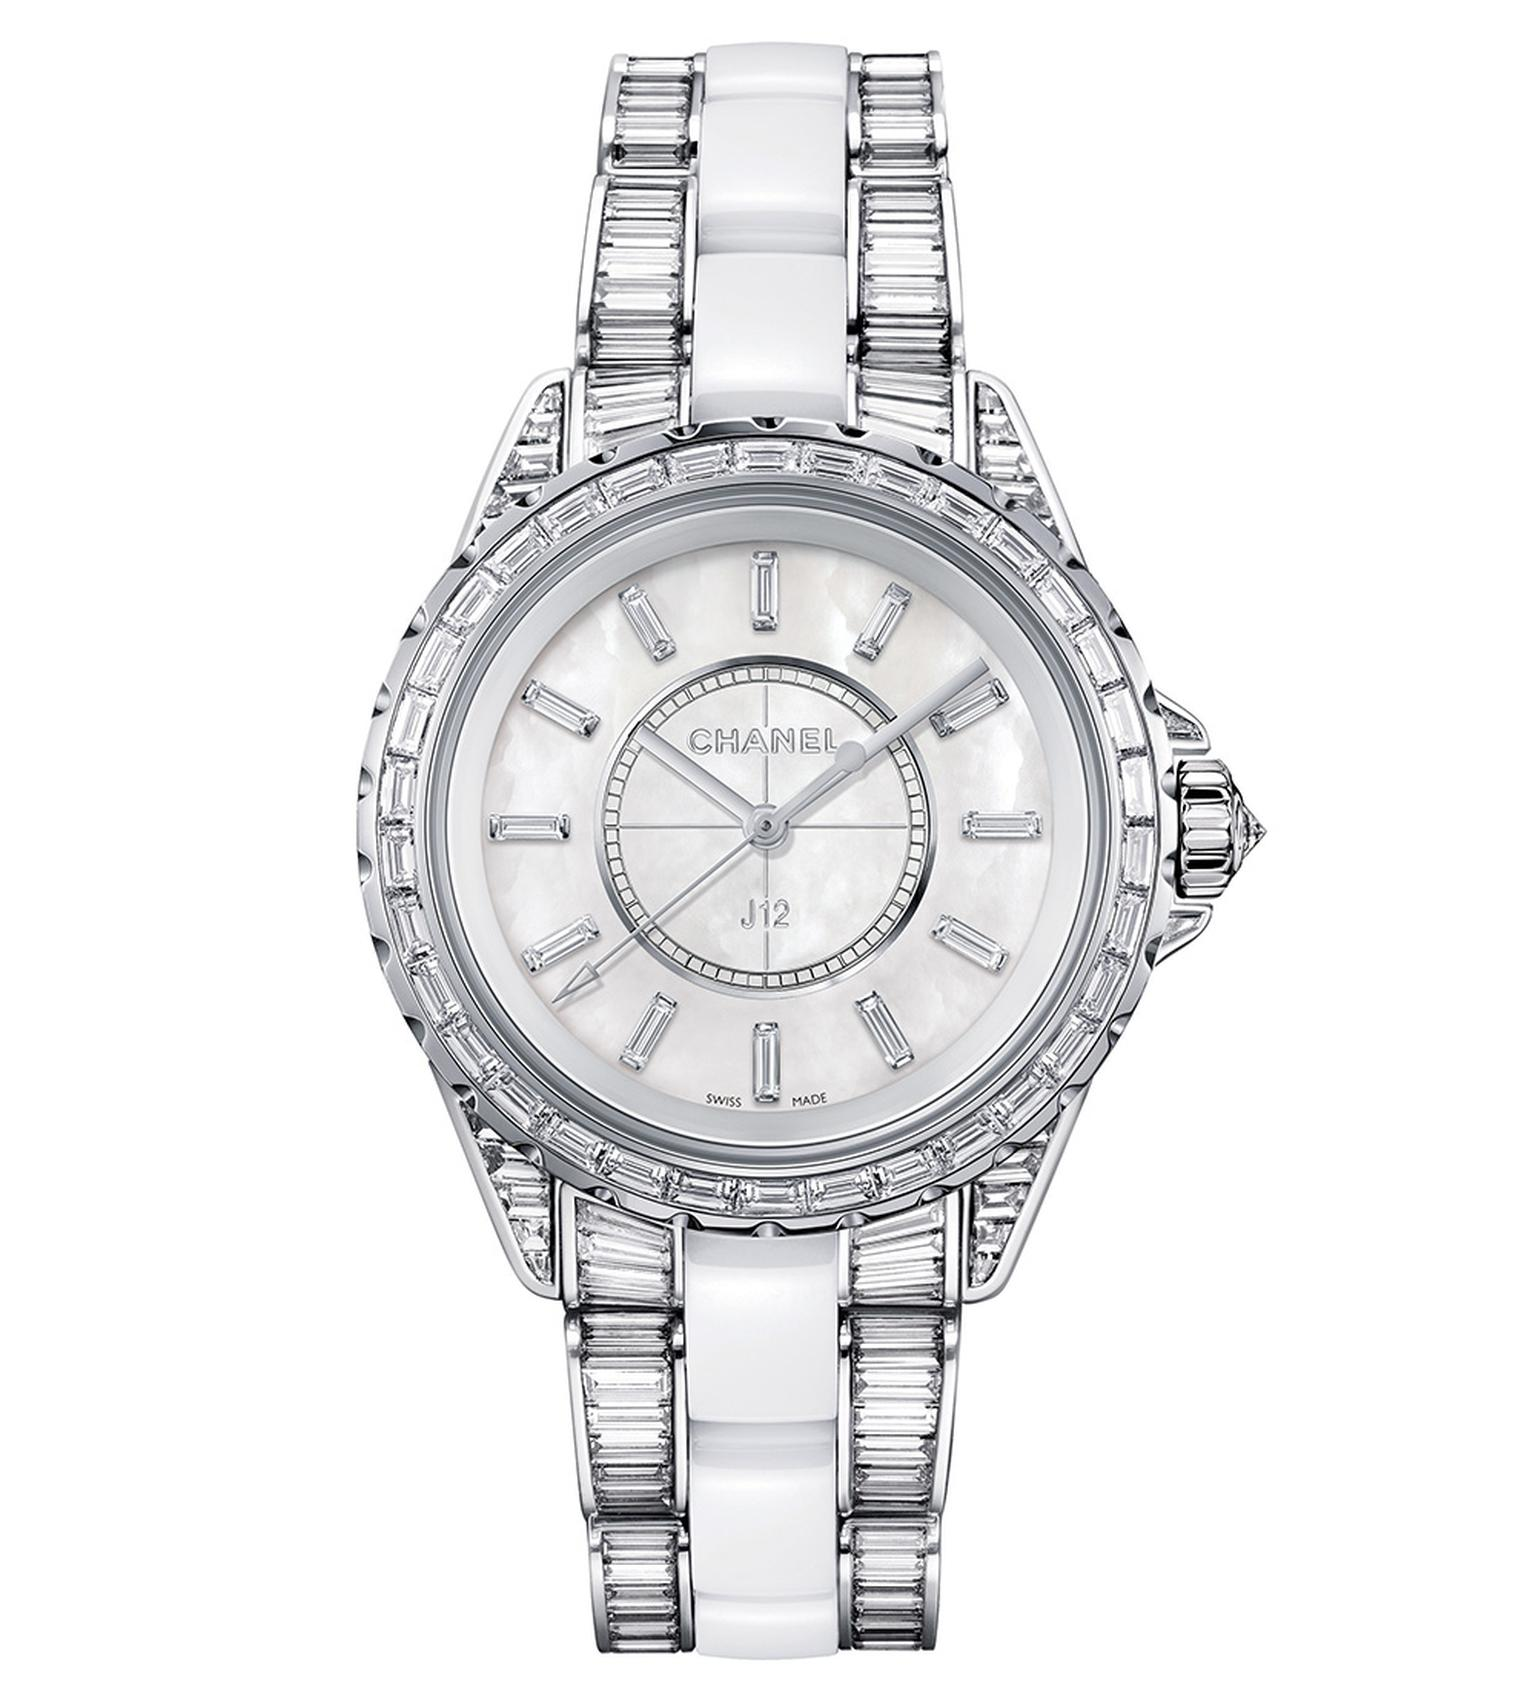 J12-White-High-Jewelry-33MM-FB-BASELWORLD